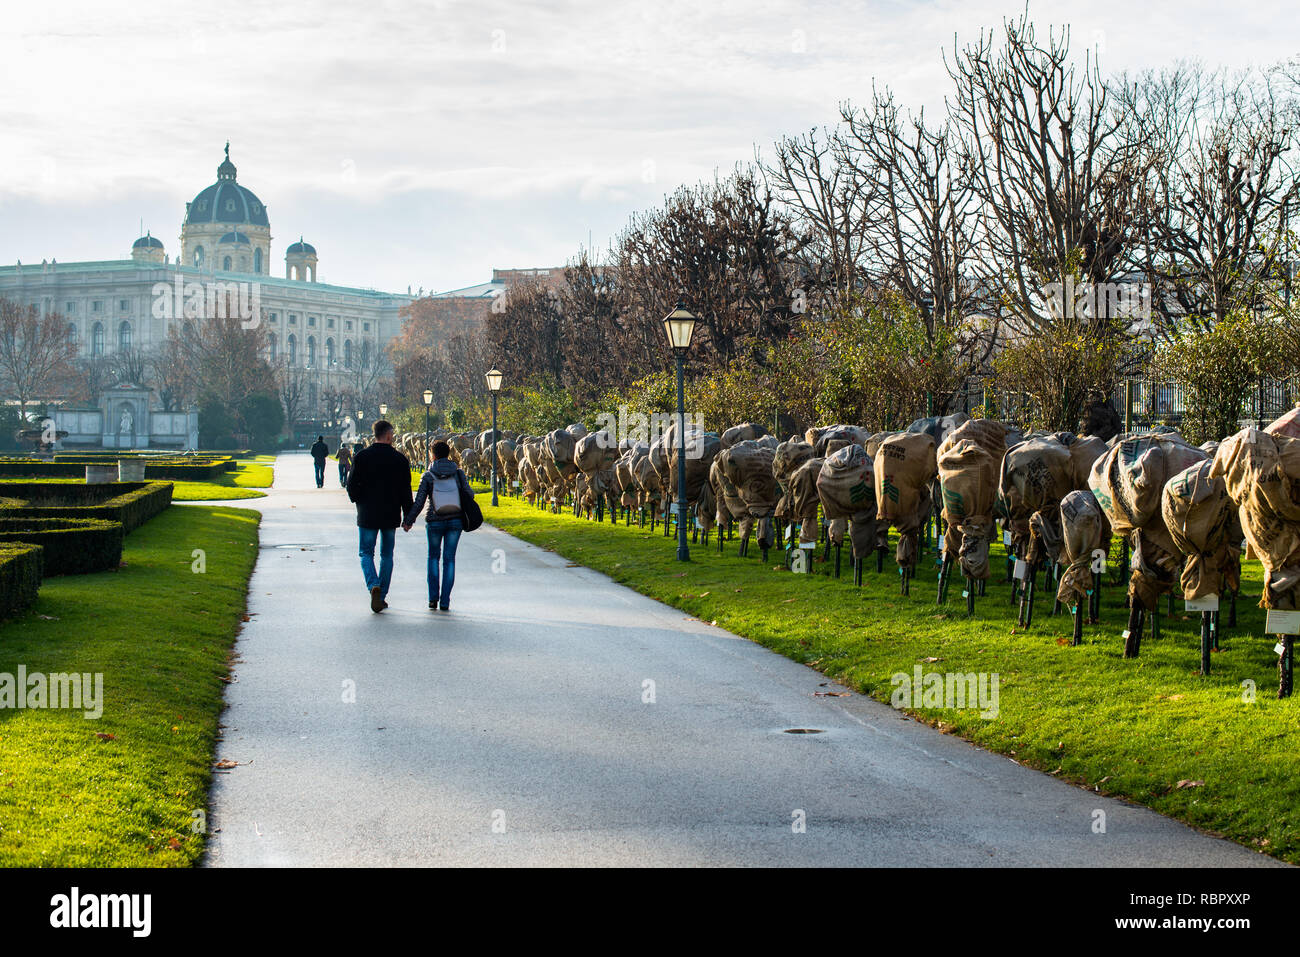 Atmospheric and romantic early morning walk along Volksgarten park and garden in Innere Stadt first district of Vienna, with Museum of Natural History. - Stock Image